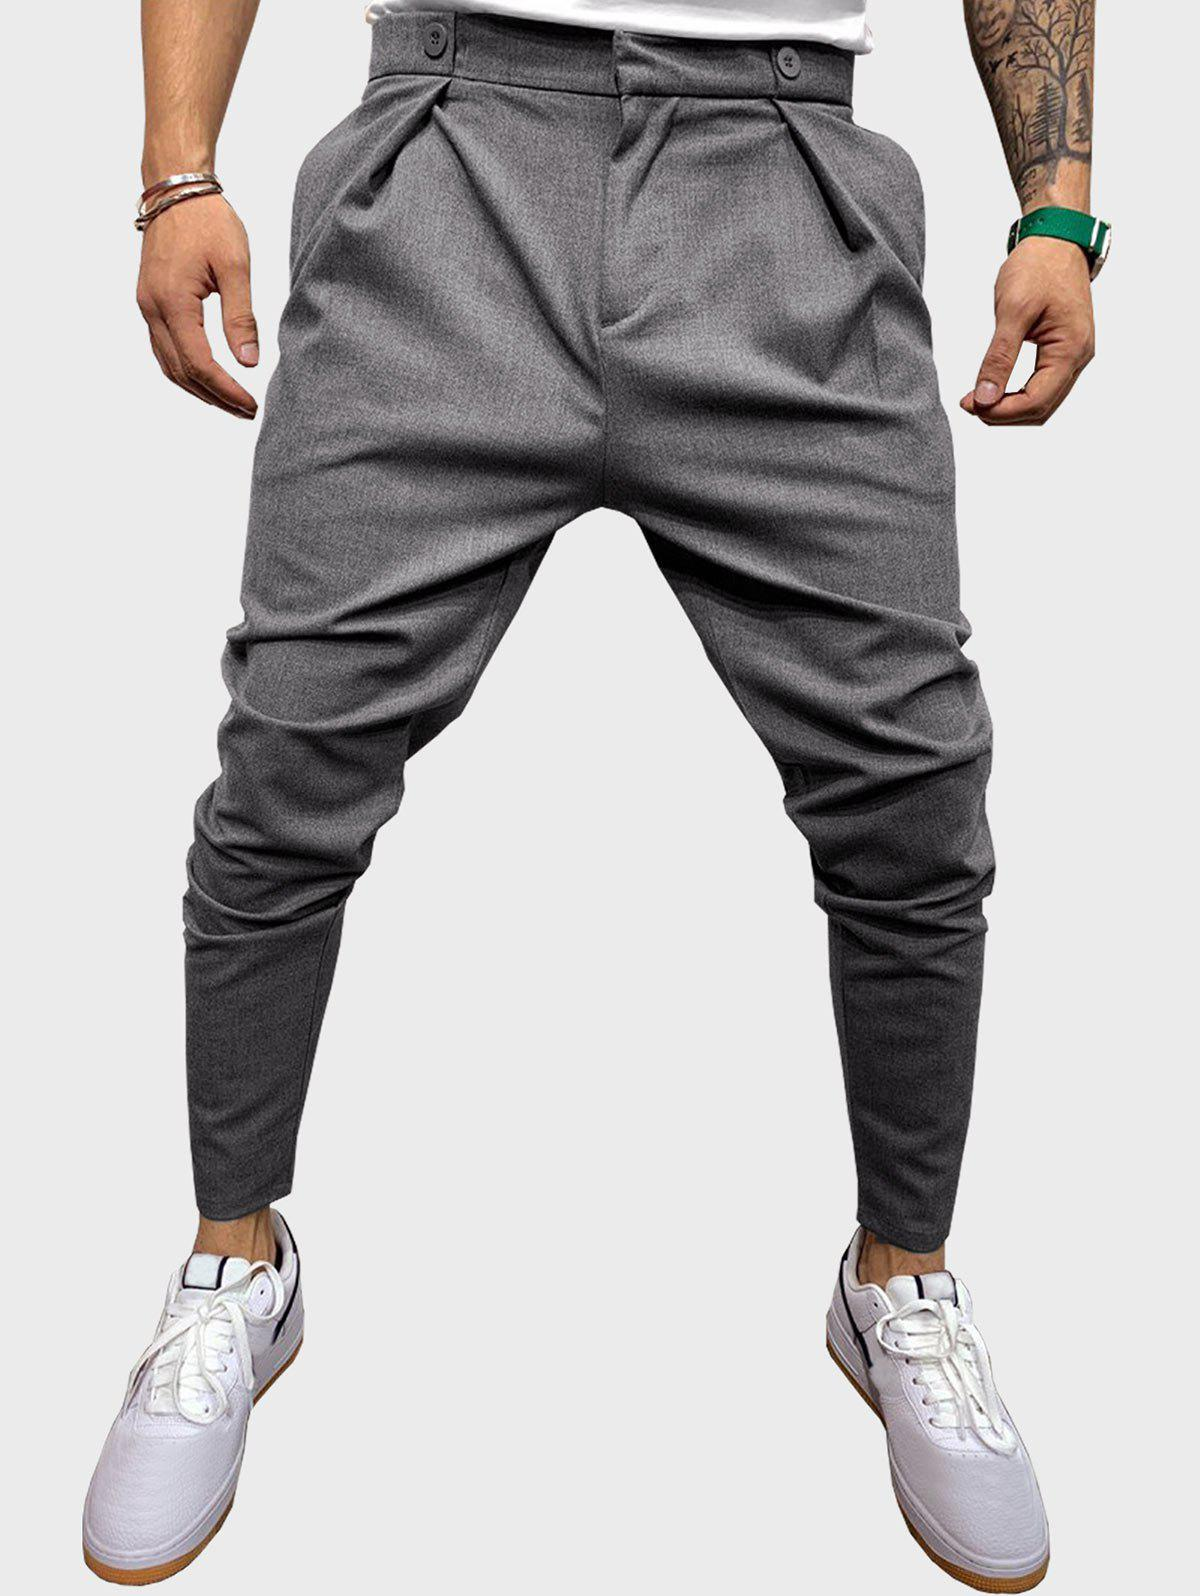 Button Detail Casual Tapered Pants - GRAY L